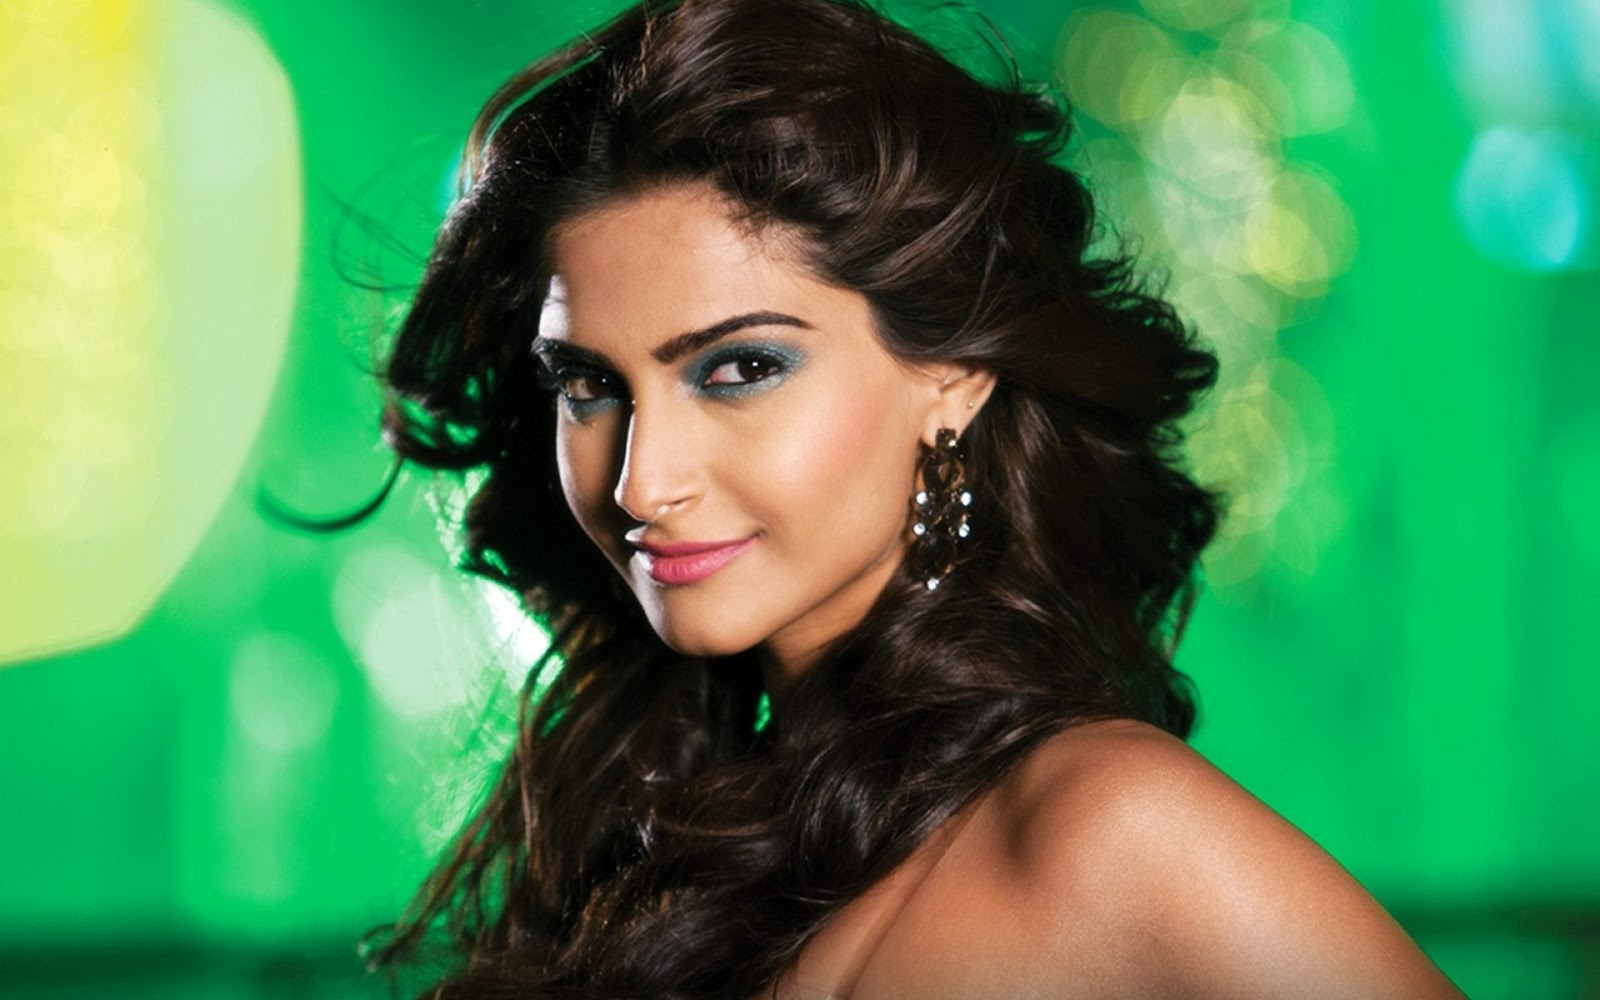 upcoming movies of sonam kapoor 20172018 with release dates